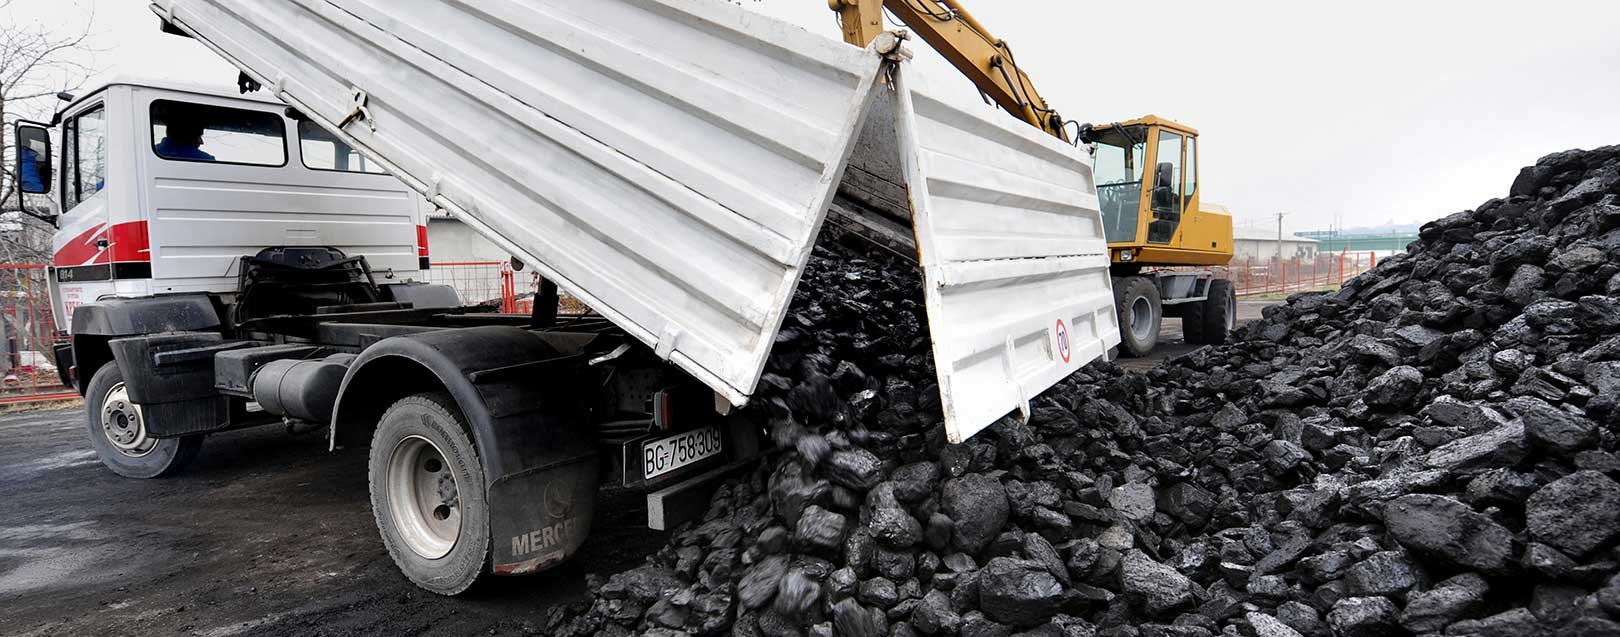 Govt has allocated 75 coal mines for end-users: Goyal